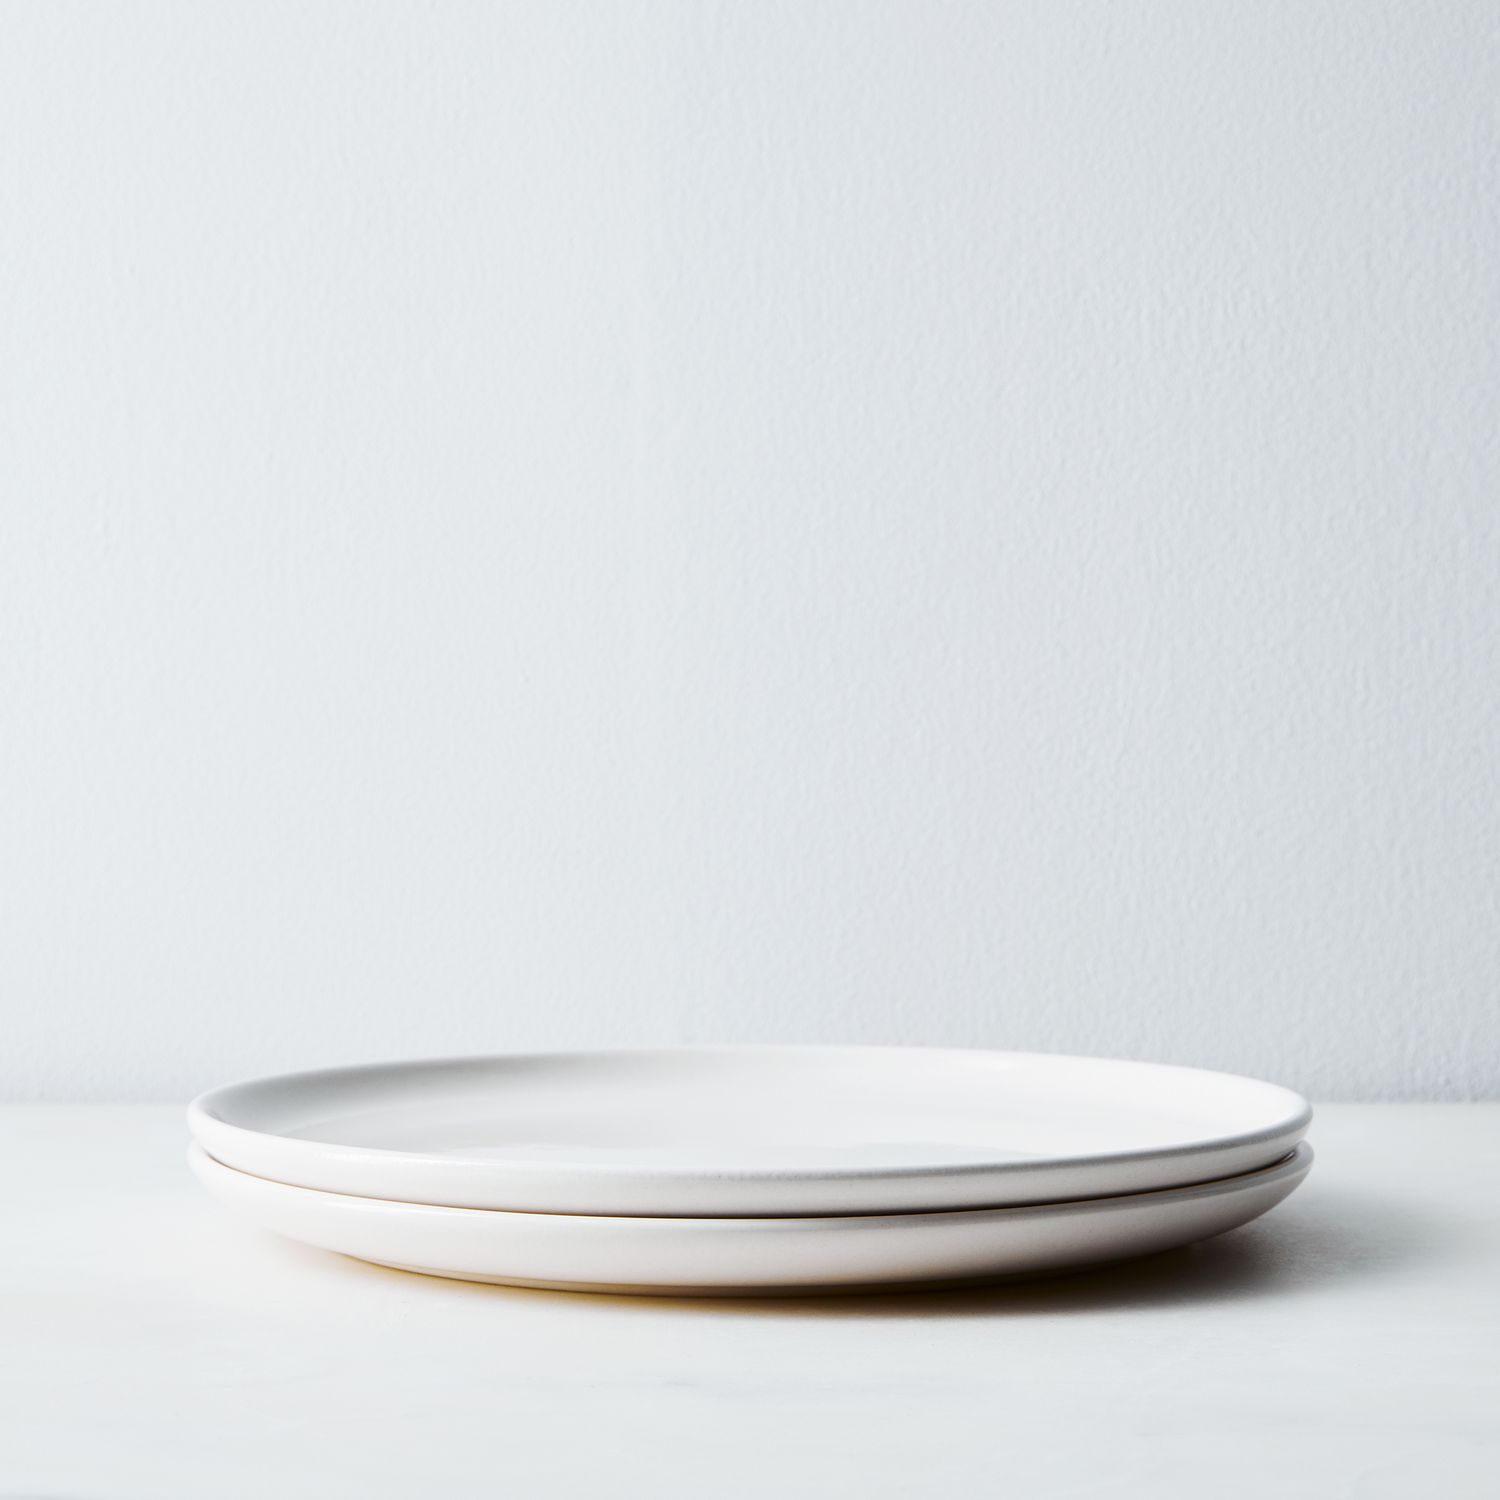 Russel Wright American Modern Dinnerware Amp Serveware On Food52